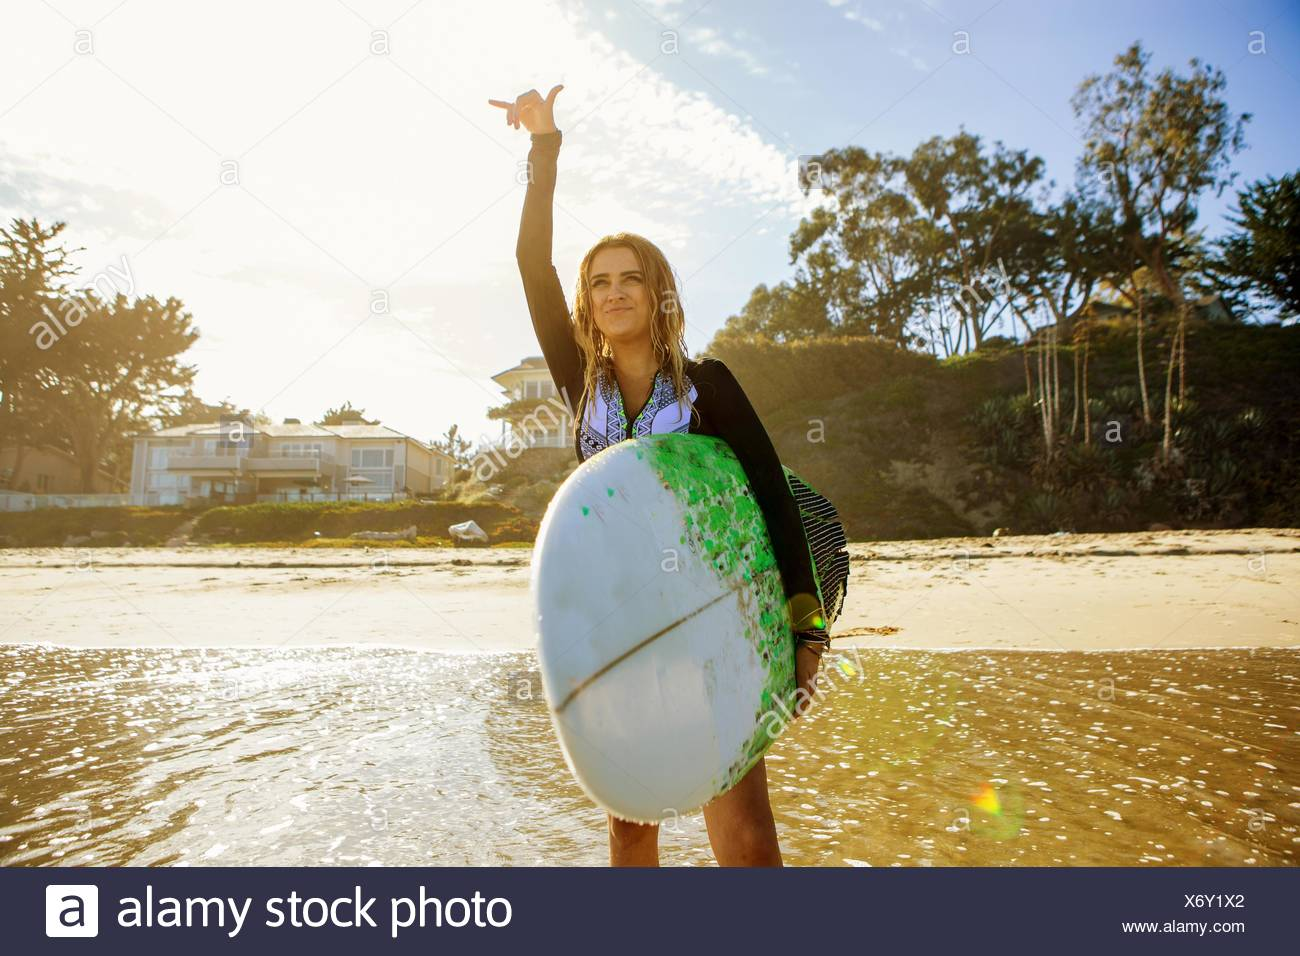 Young woman standing in sea, looking out to sea, holding surfboard, gesturing with hand - Stock Image